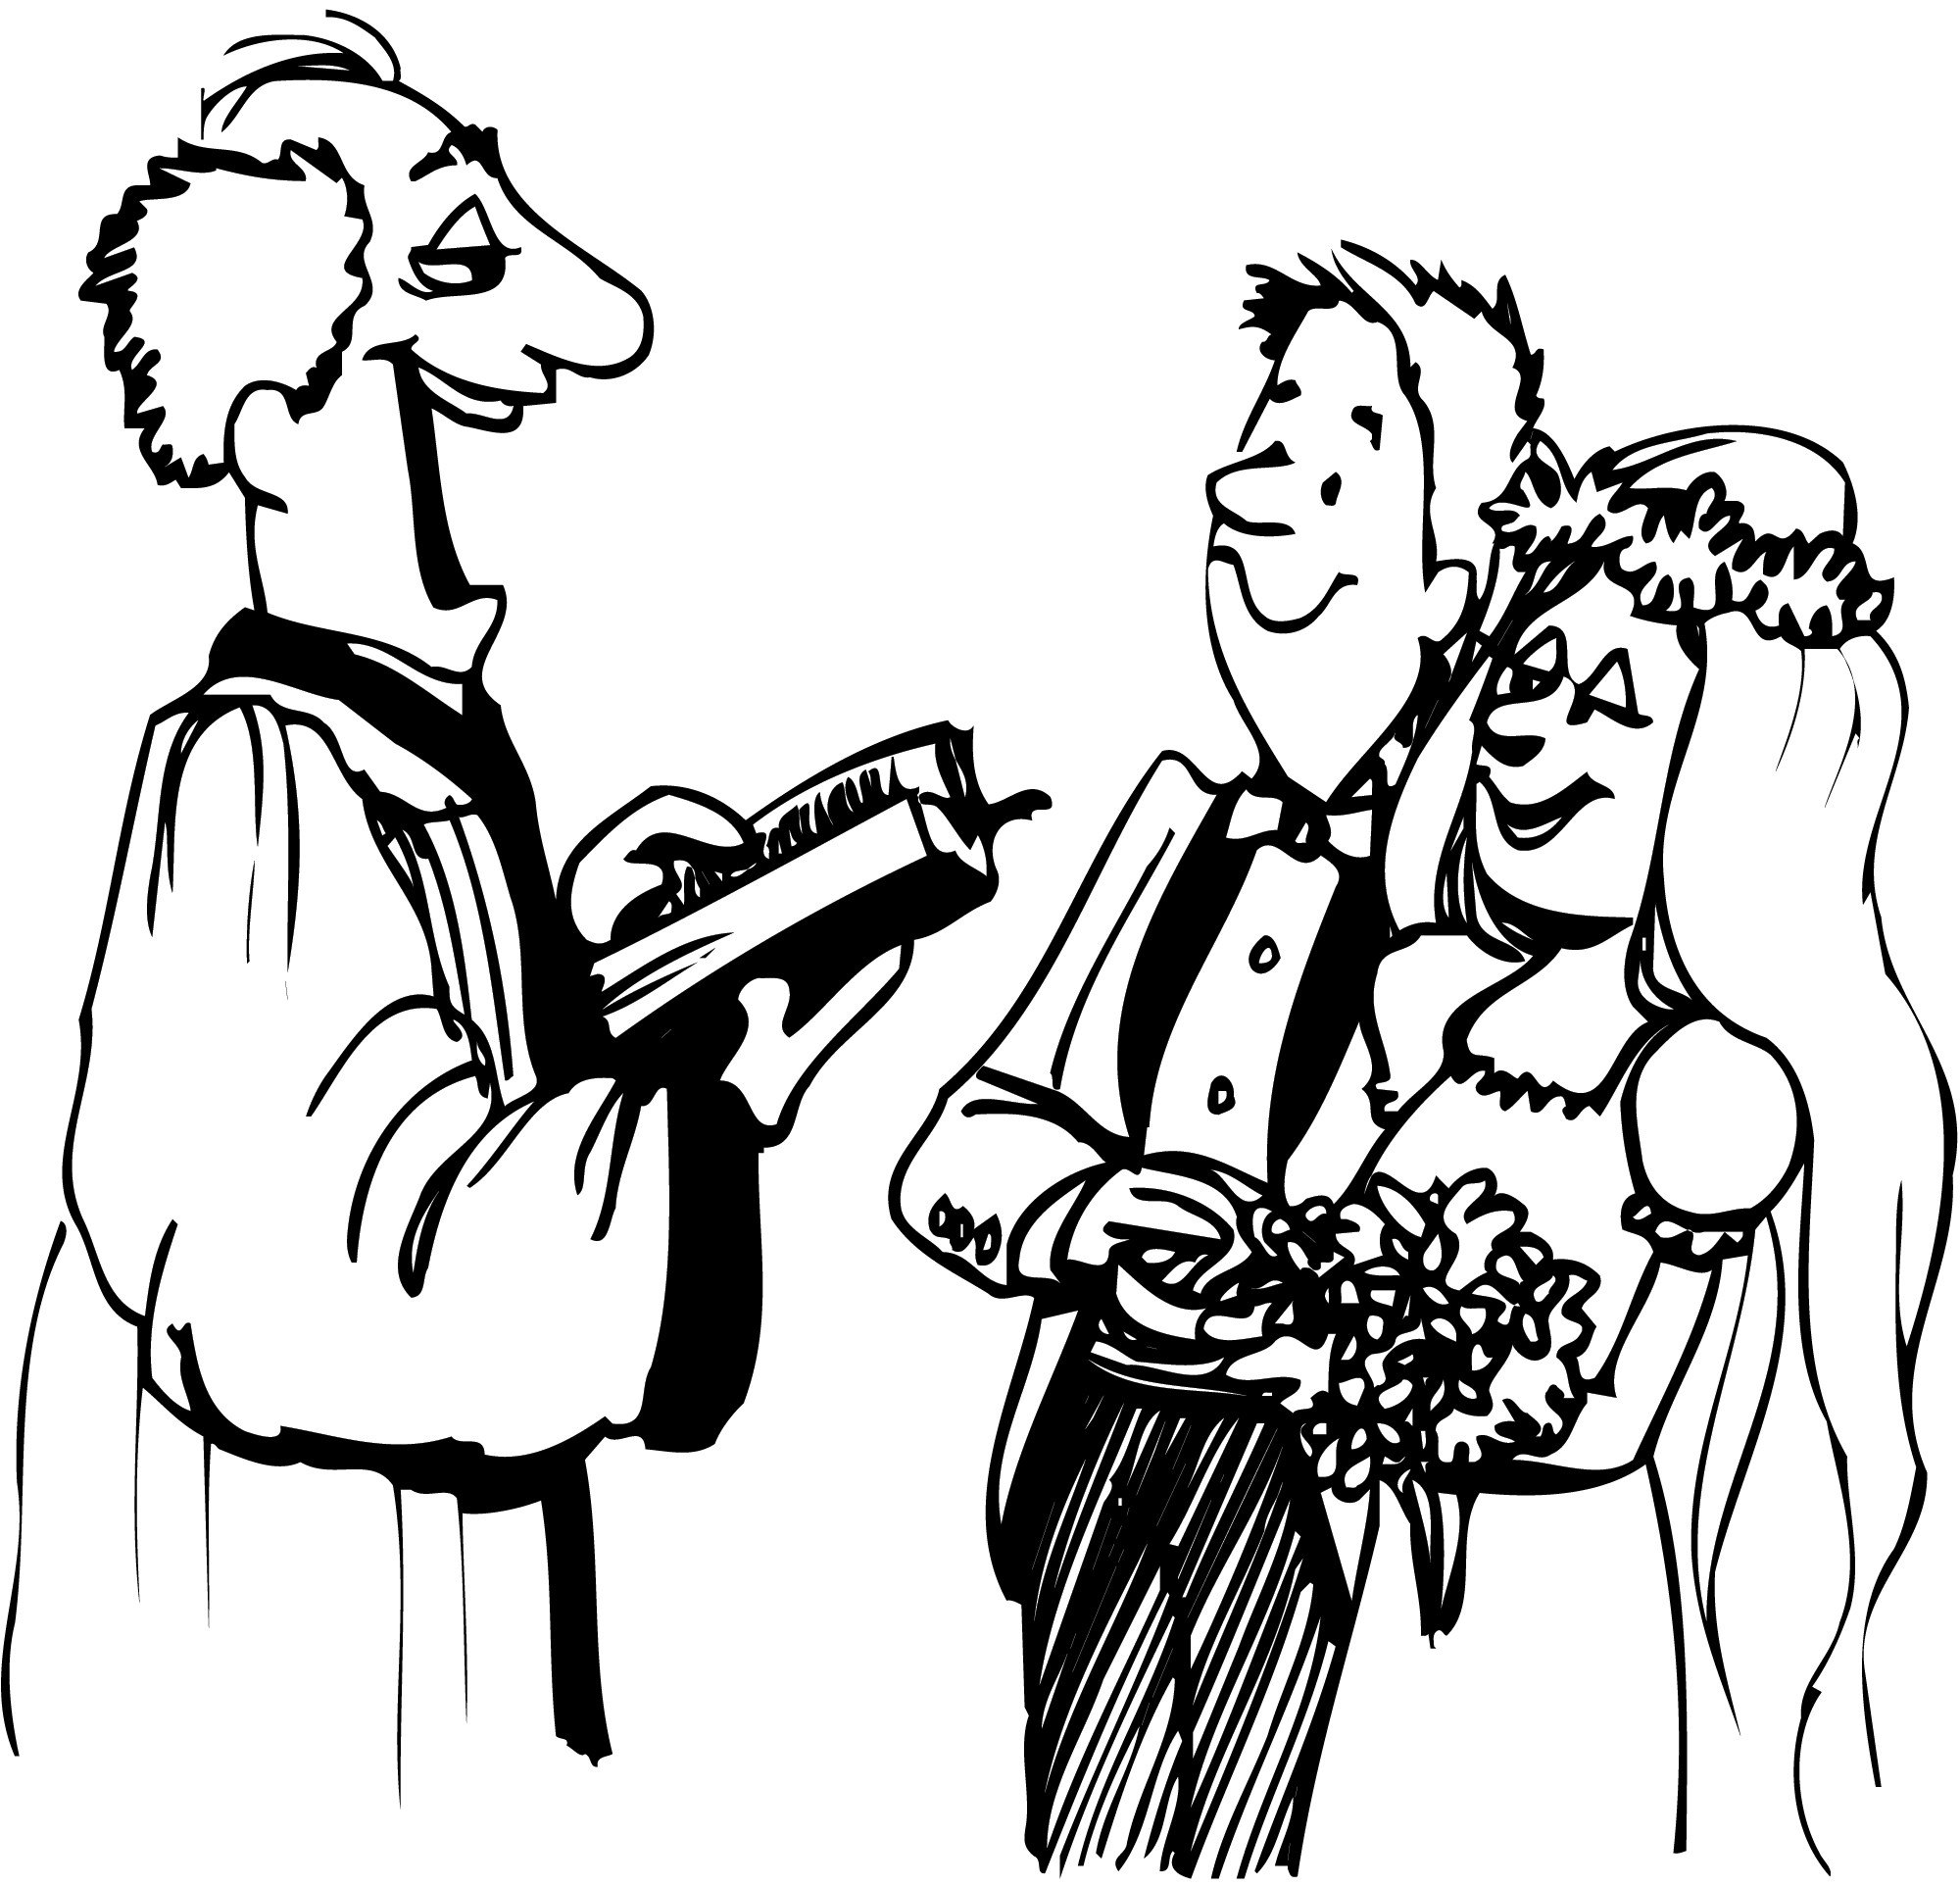 Wedding ceremony clipart black and white 6 » Clipart Portal.